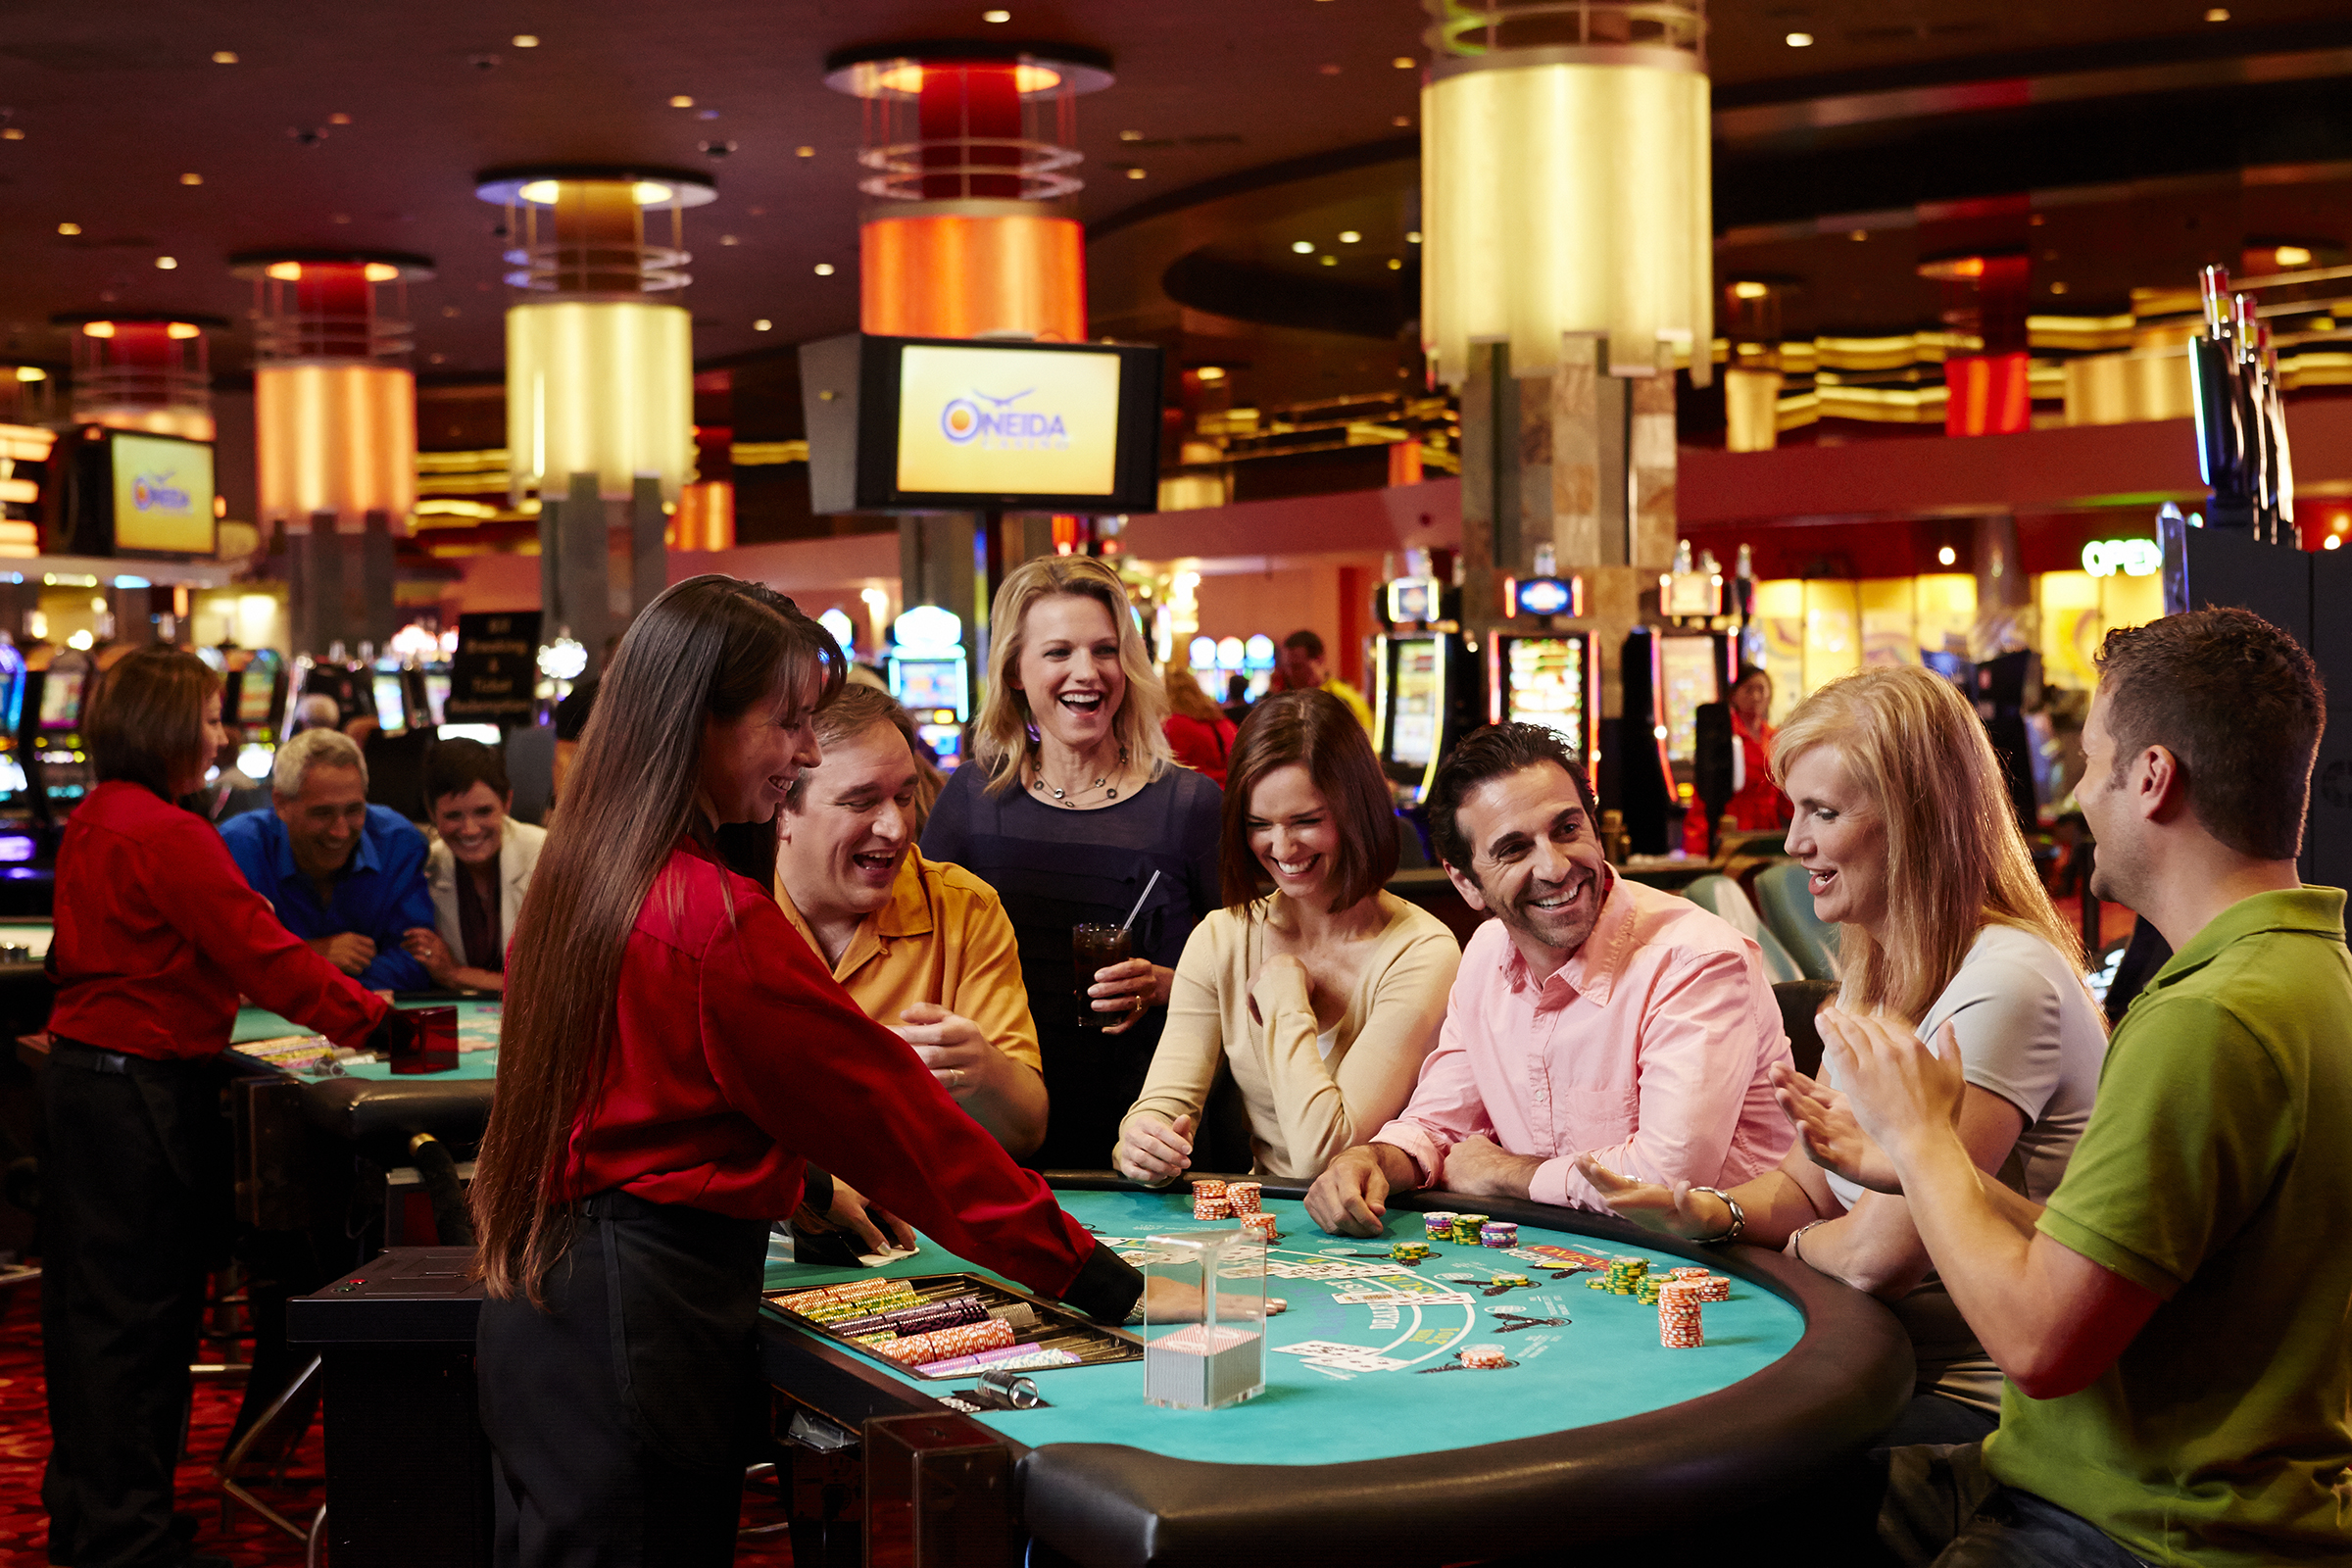 Oneida Casino Gold Club Benefits